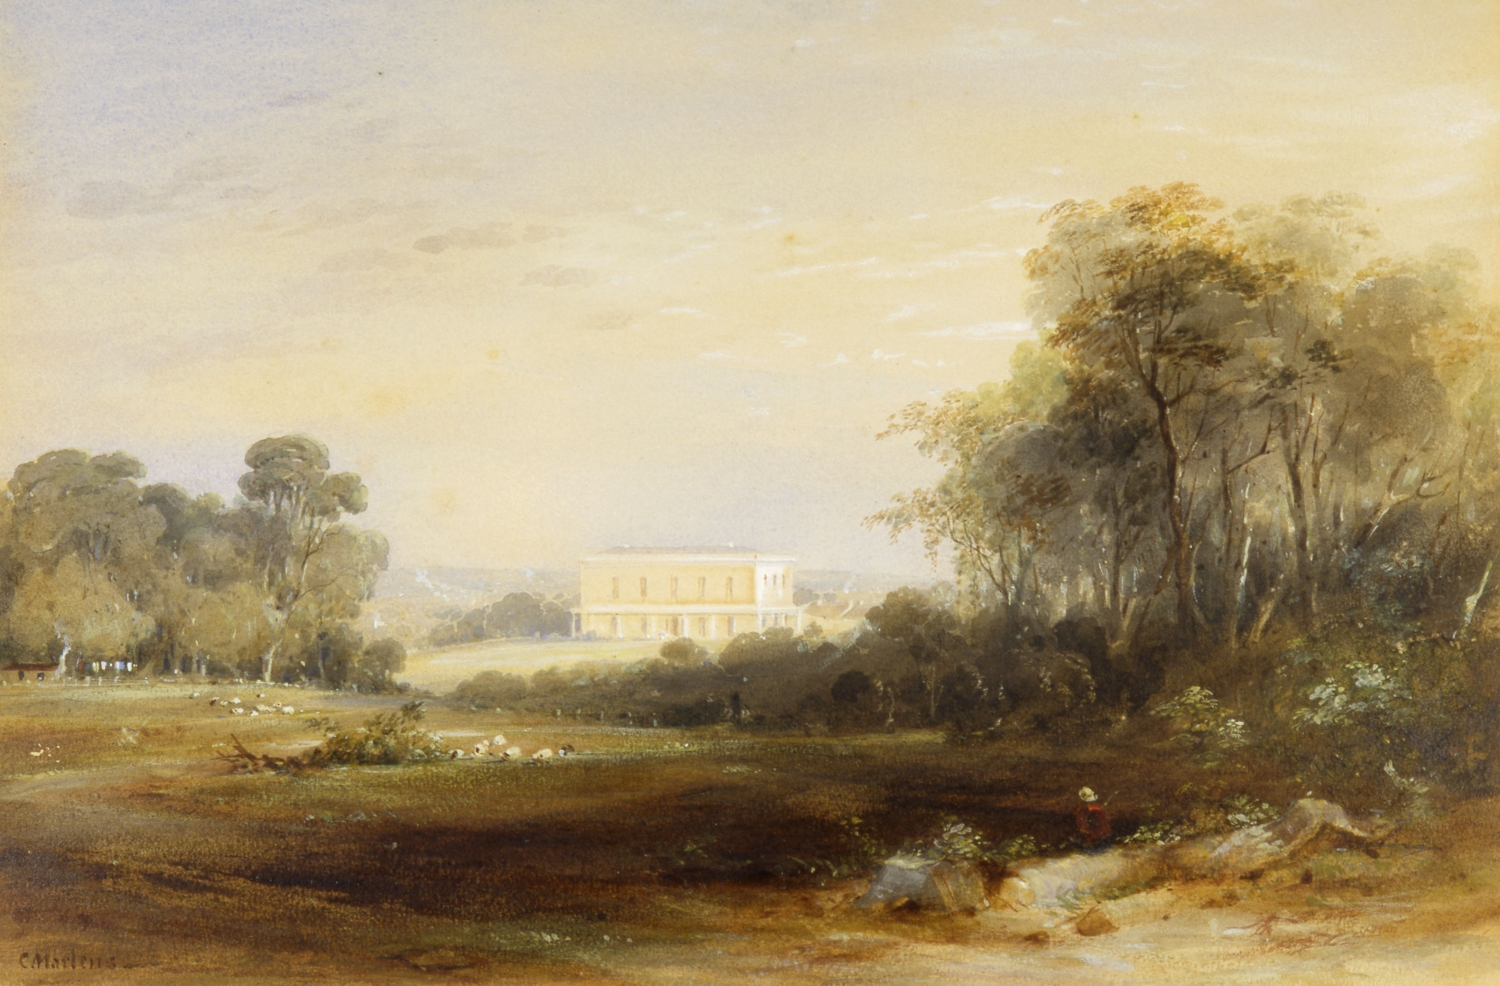 Landscape painting with large trees and open paddocks with palatial 2 storey country house in the distance and person seated on the ground in the foreground.